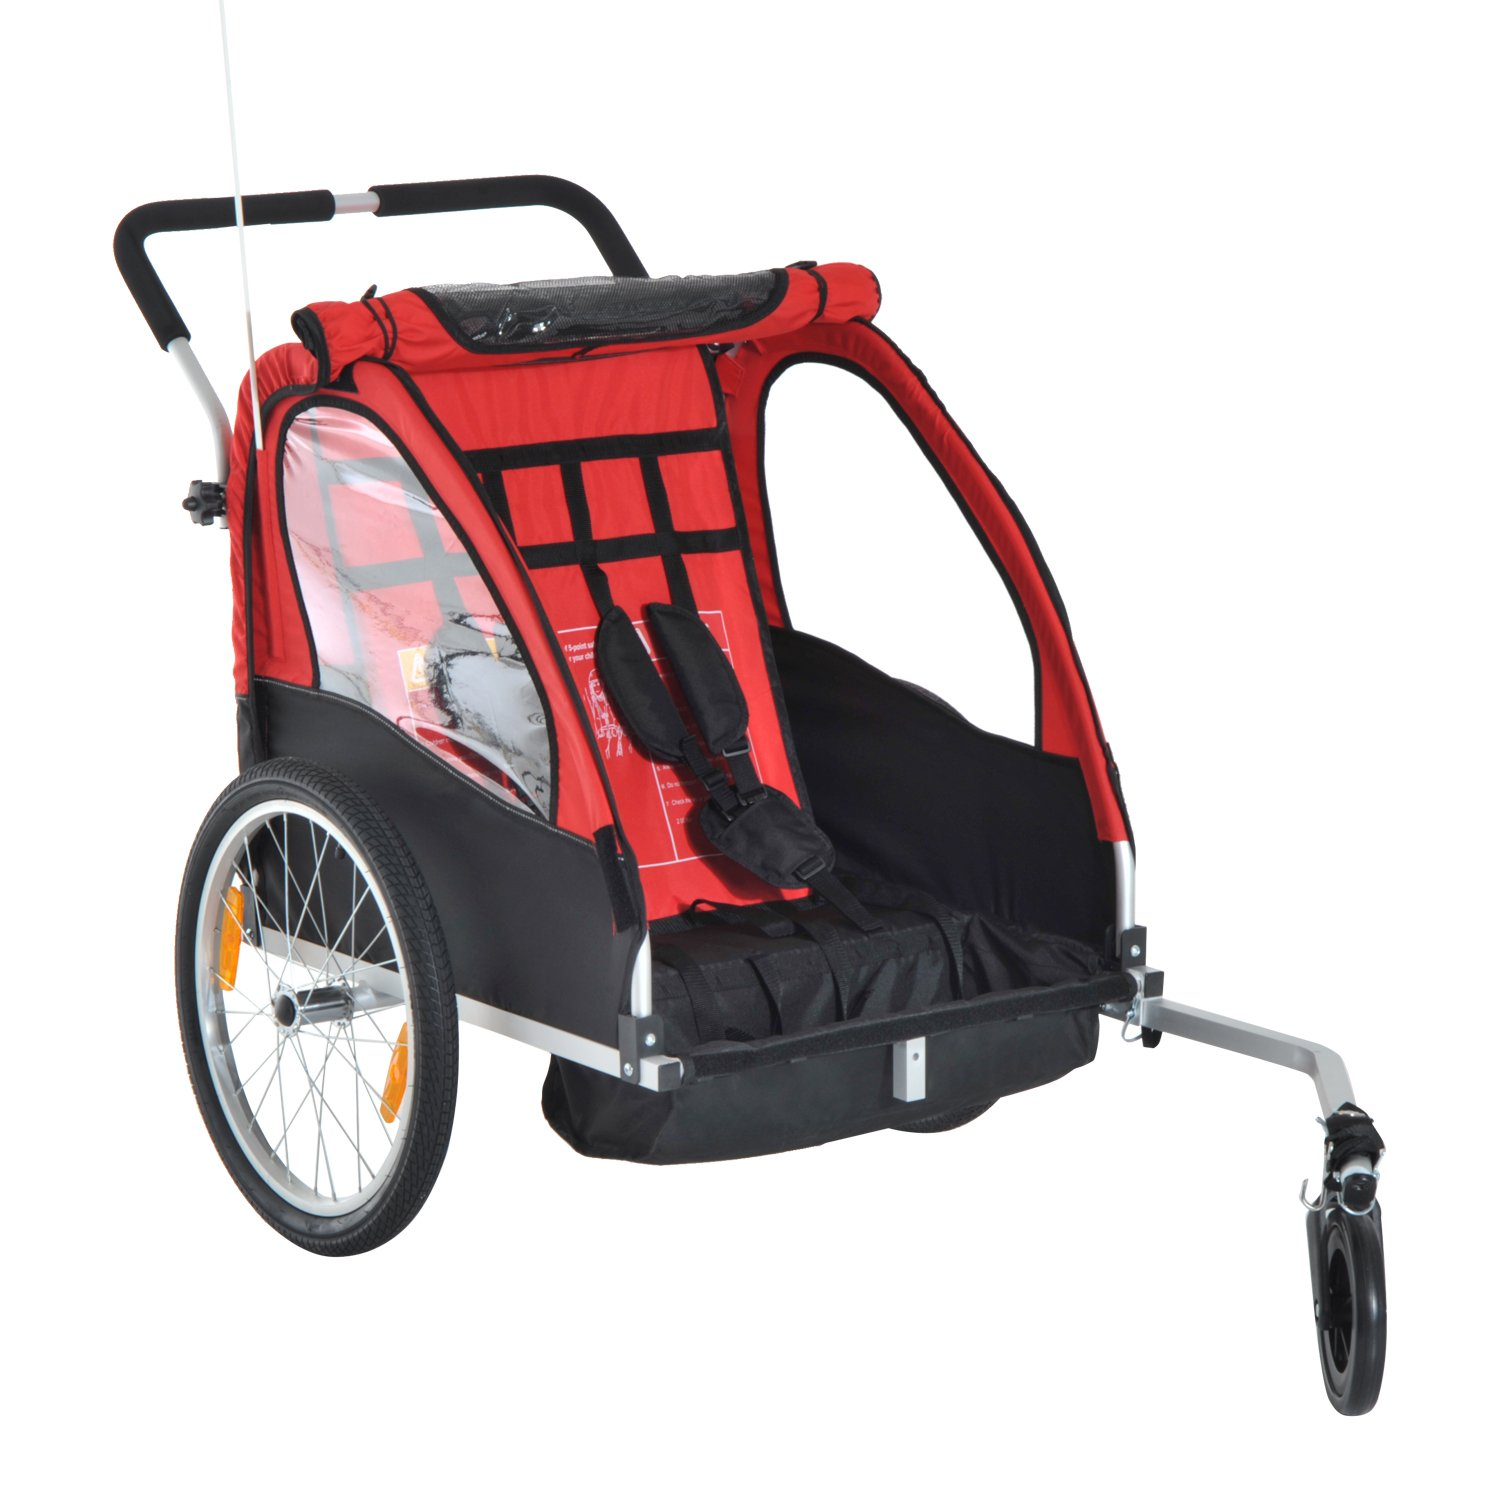 Aosom Double Seats Baby Kids Bicycle Trailer & Stroller with All Weather Portable Canopy Shield and Dual Wheels (Black/Red) Aosom Canada CA440-002RD0231